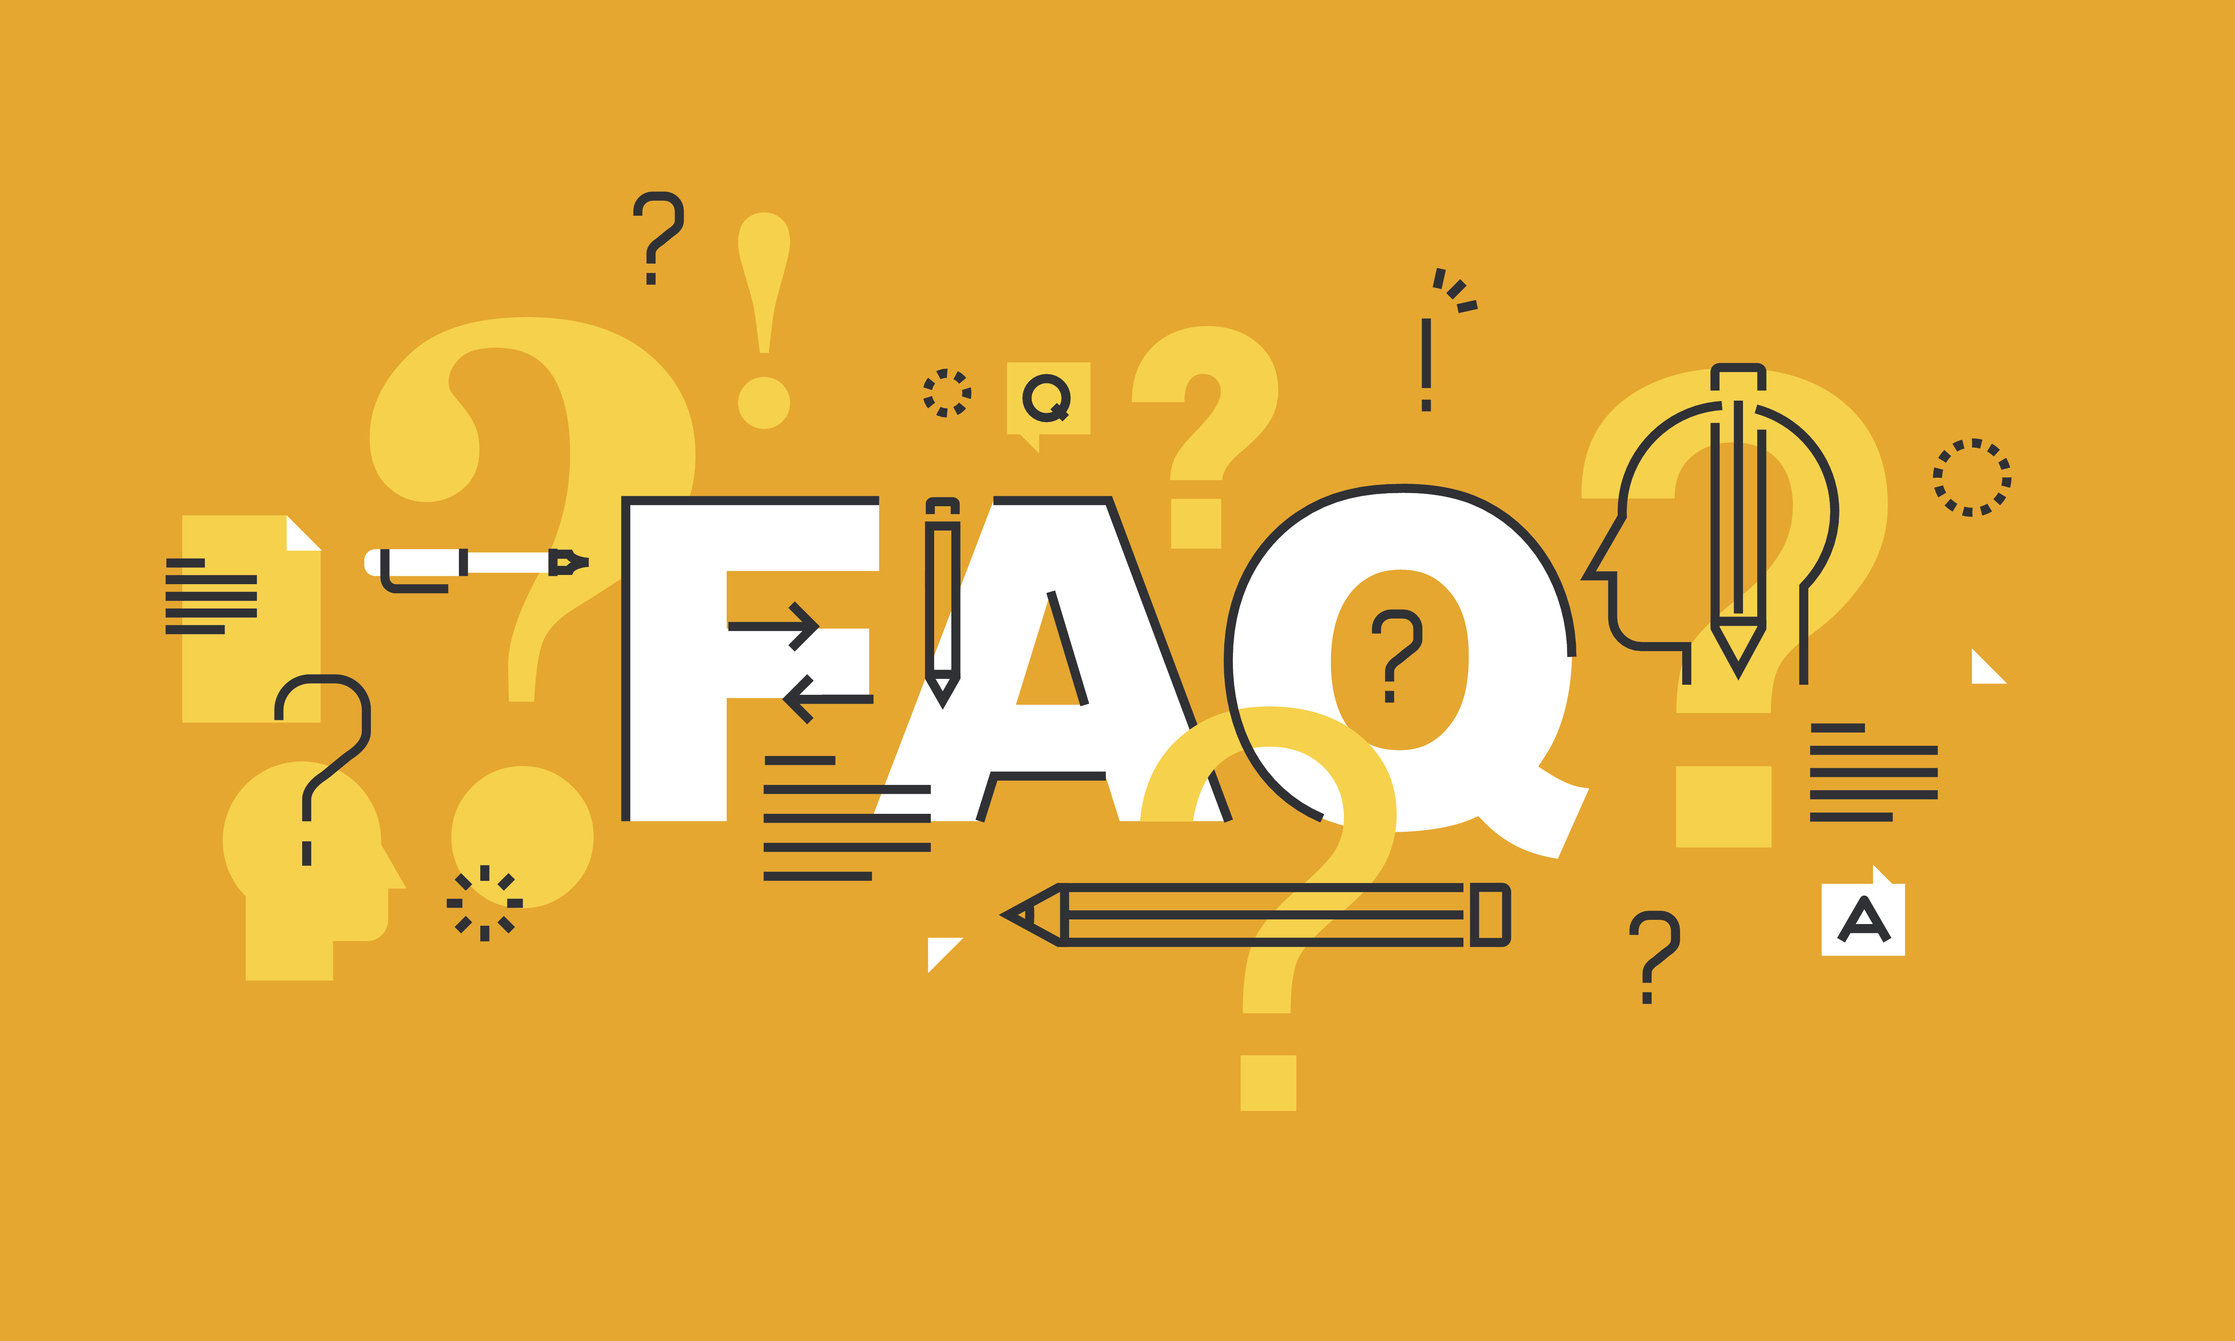 FAQ illustration